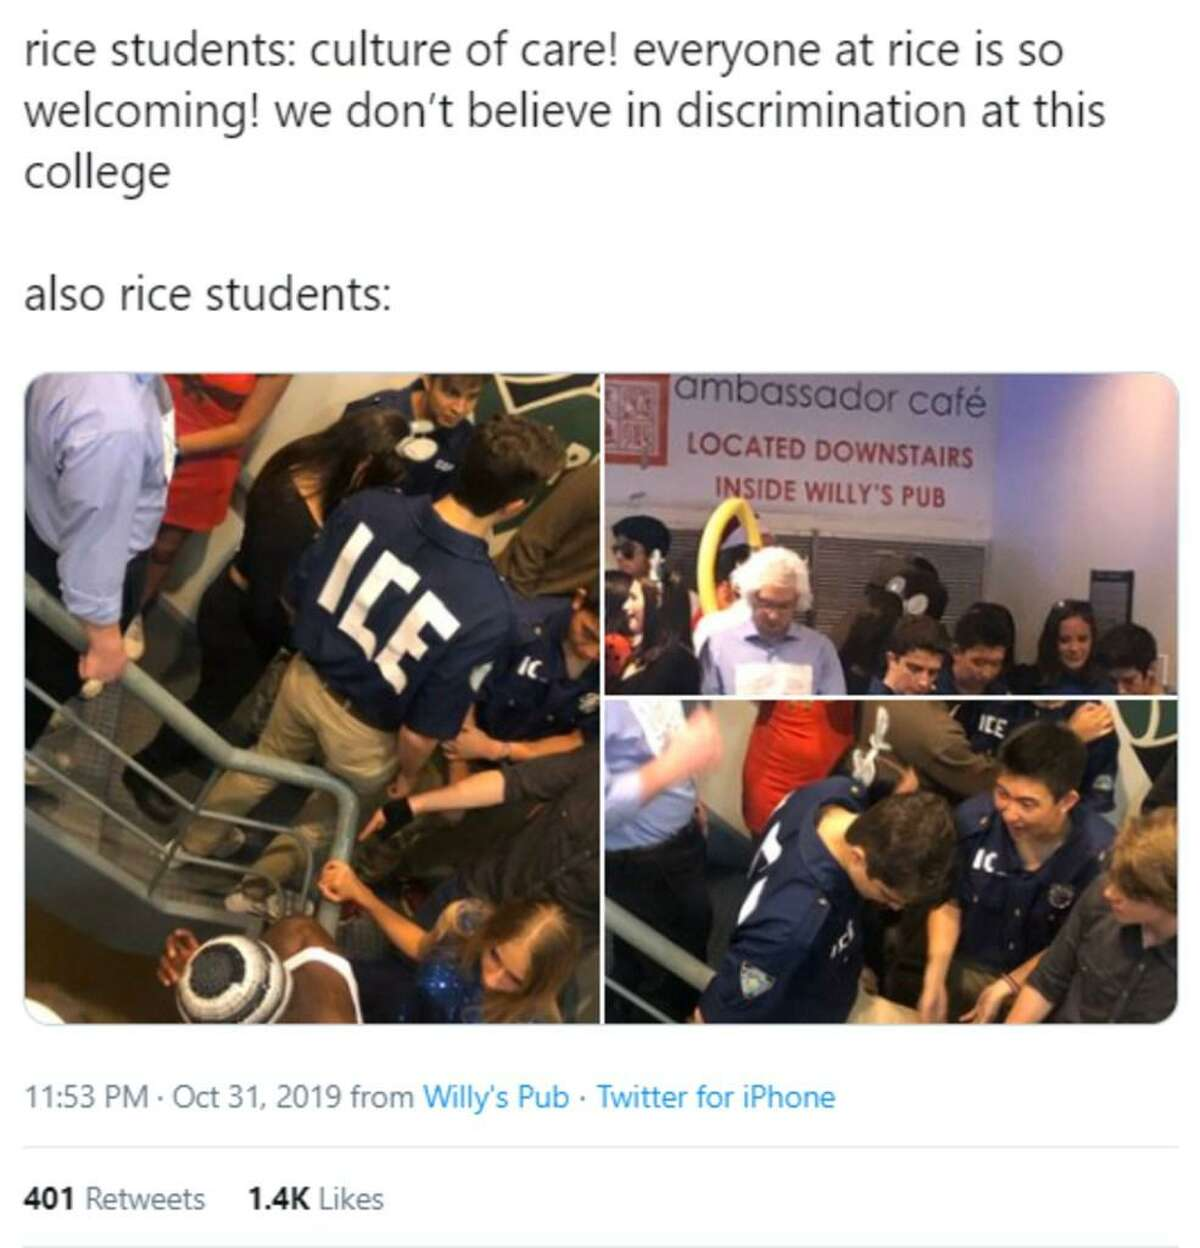 Three Rice University students who dressed up as U.S. Immigration and Customs Enforcement officers at a Halloween event on campus have sparked outrage at the university after their photos surfaced on social media.